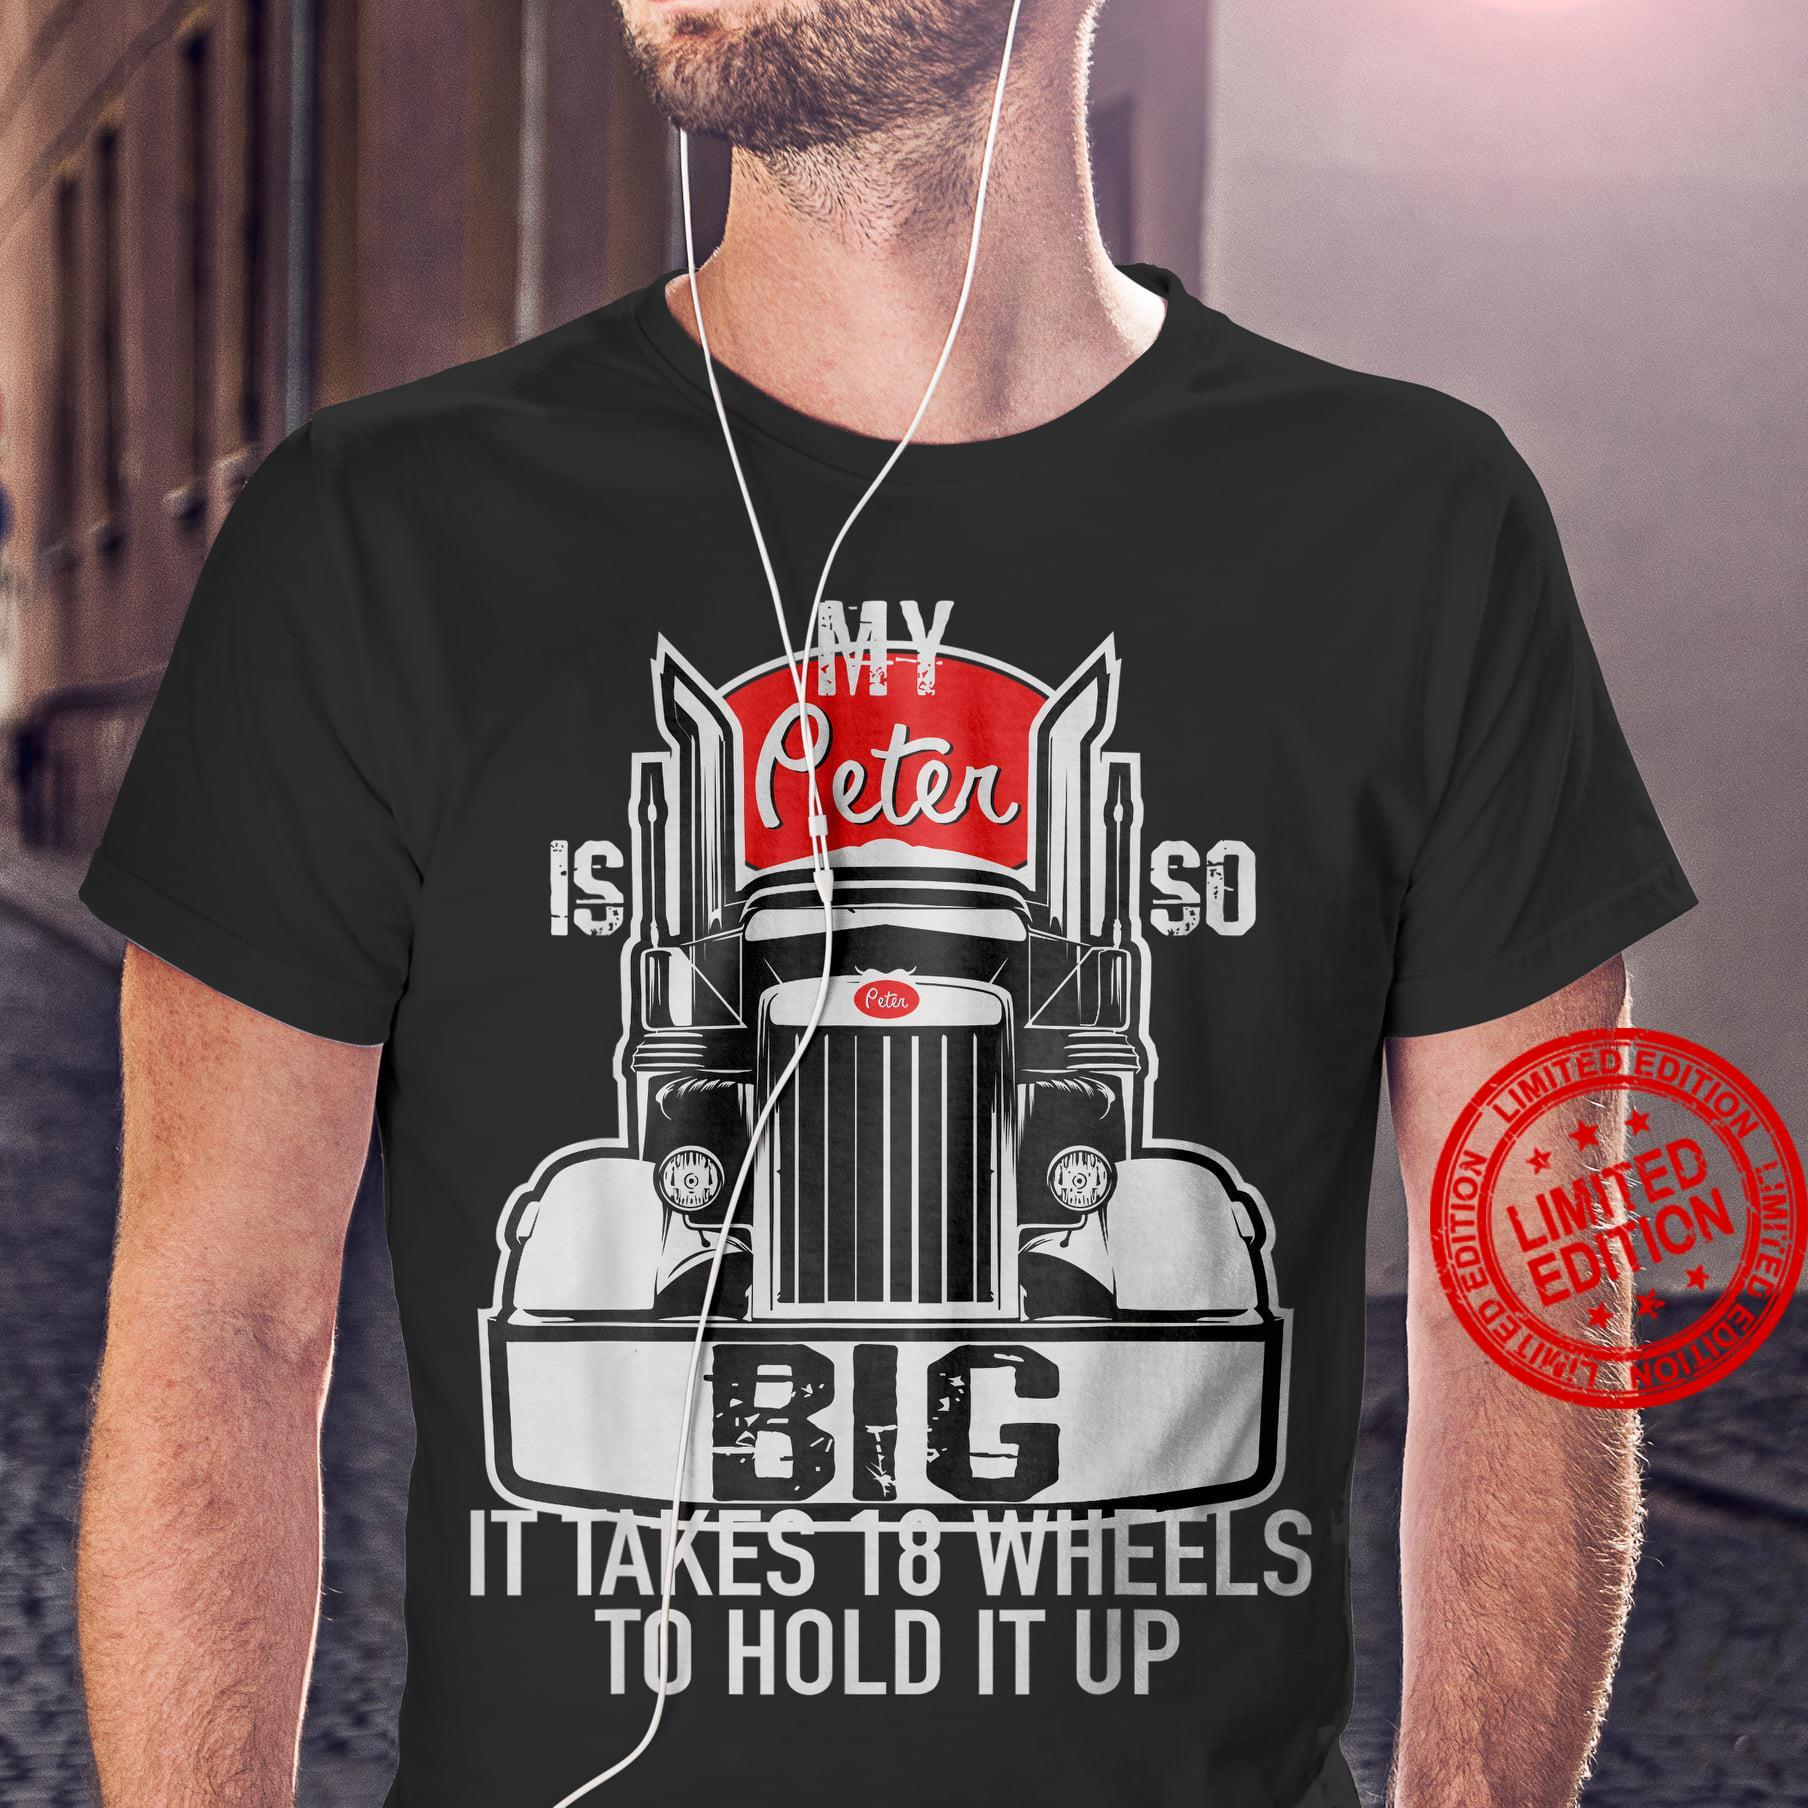 My Peter Is So It Takes 18 Wheels To Hold It Up Shirt